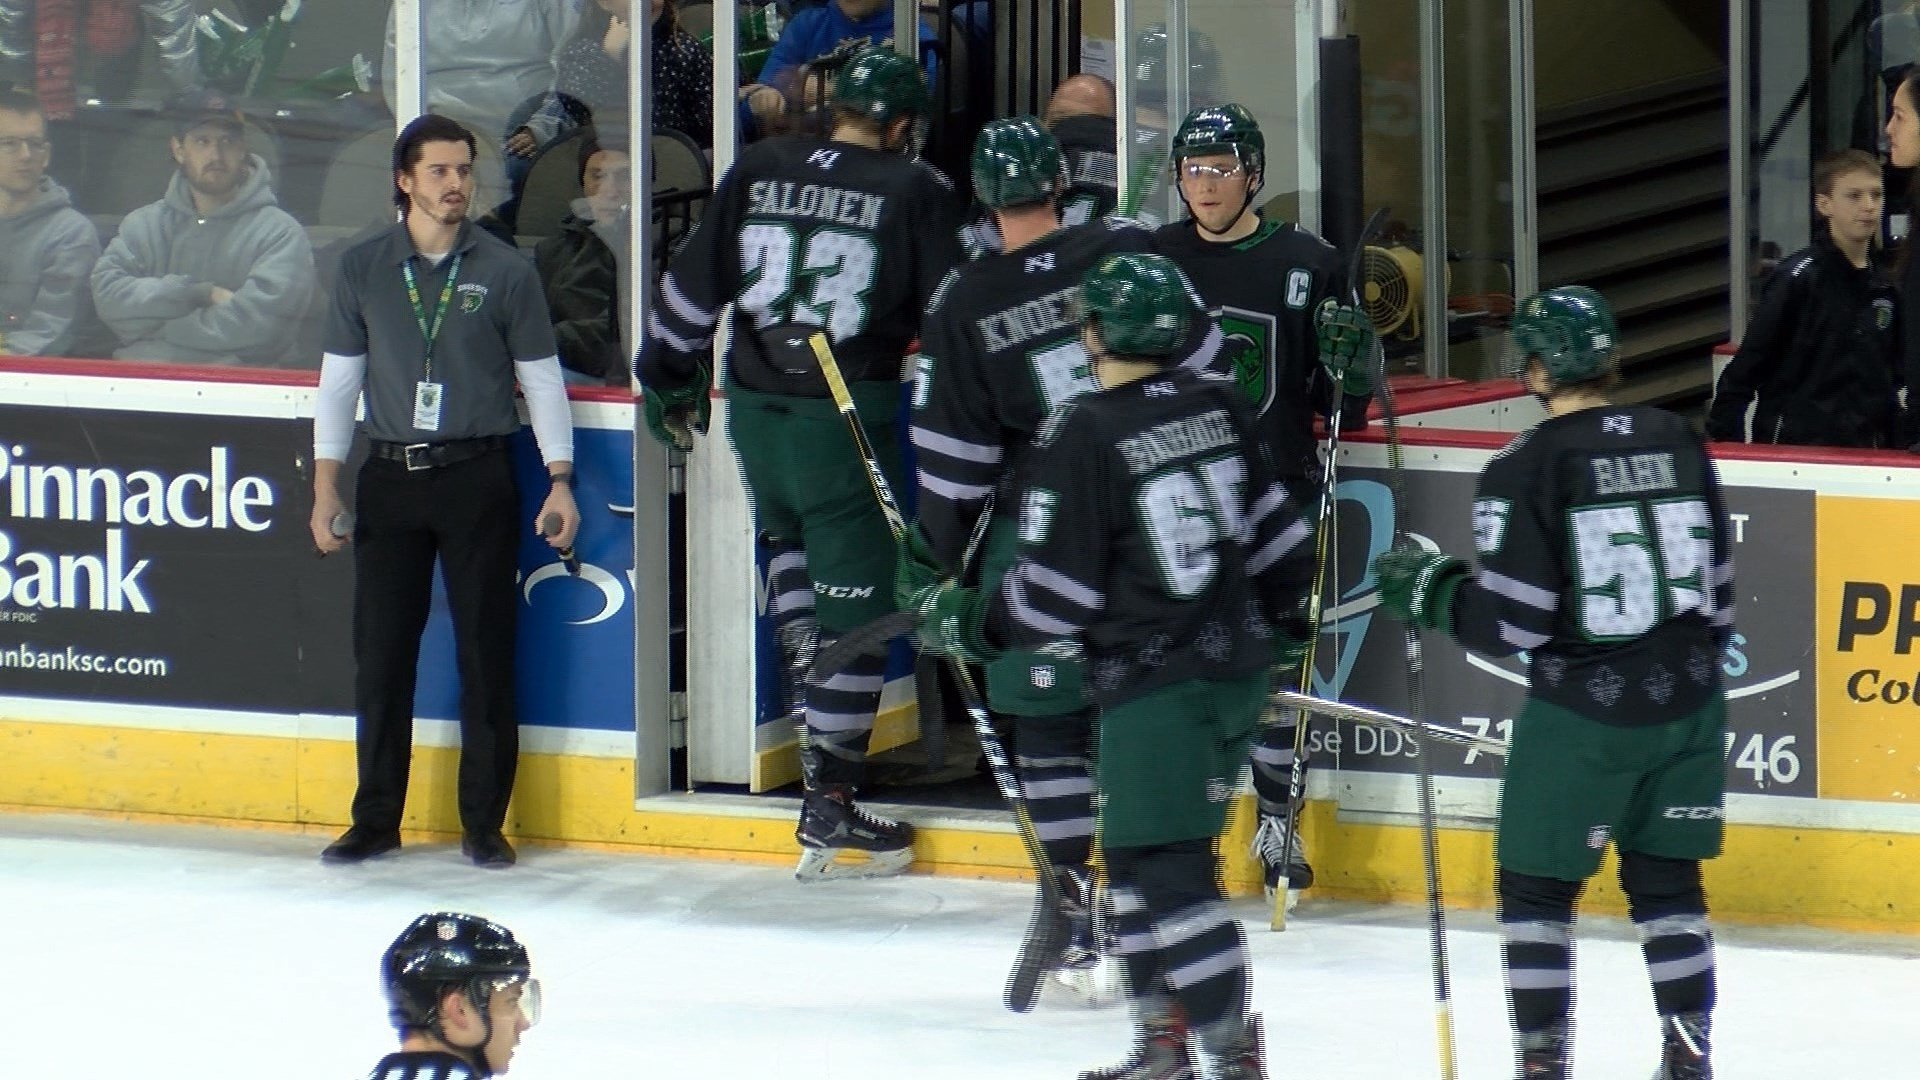 The Musketeers beat Omaha in overtime on Sunday, 2-1.